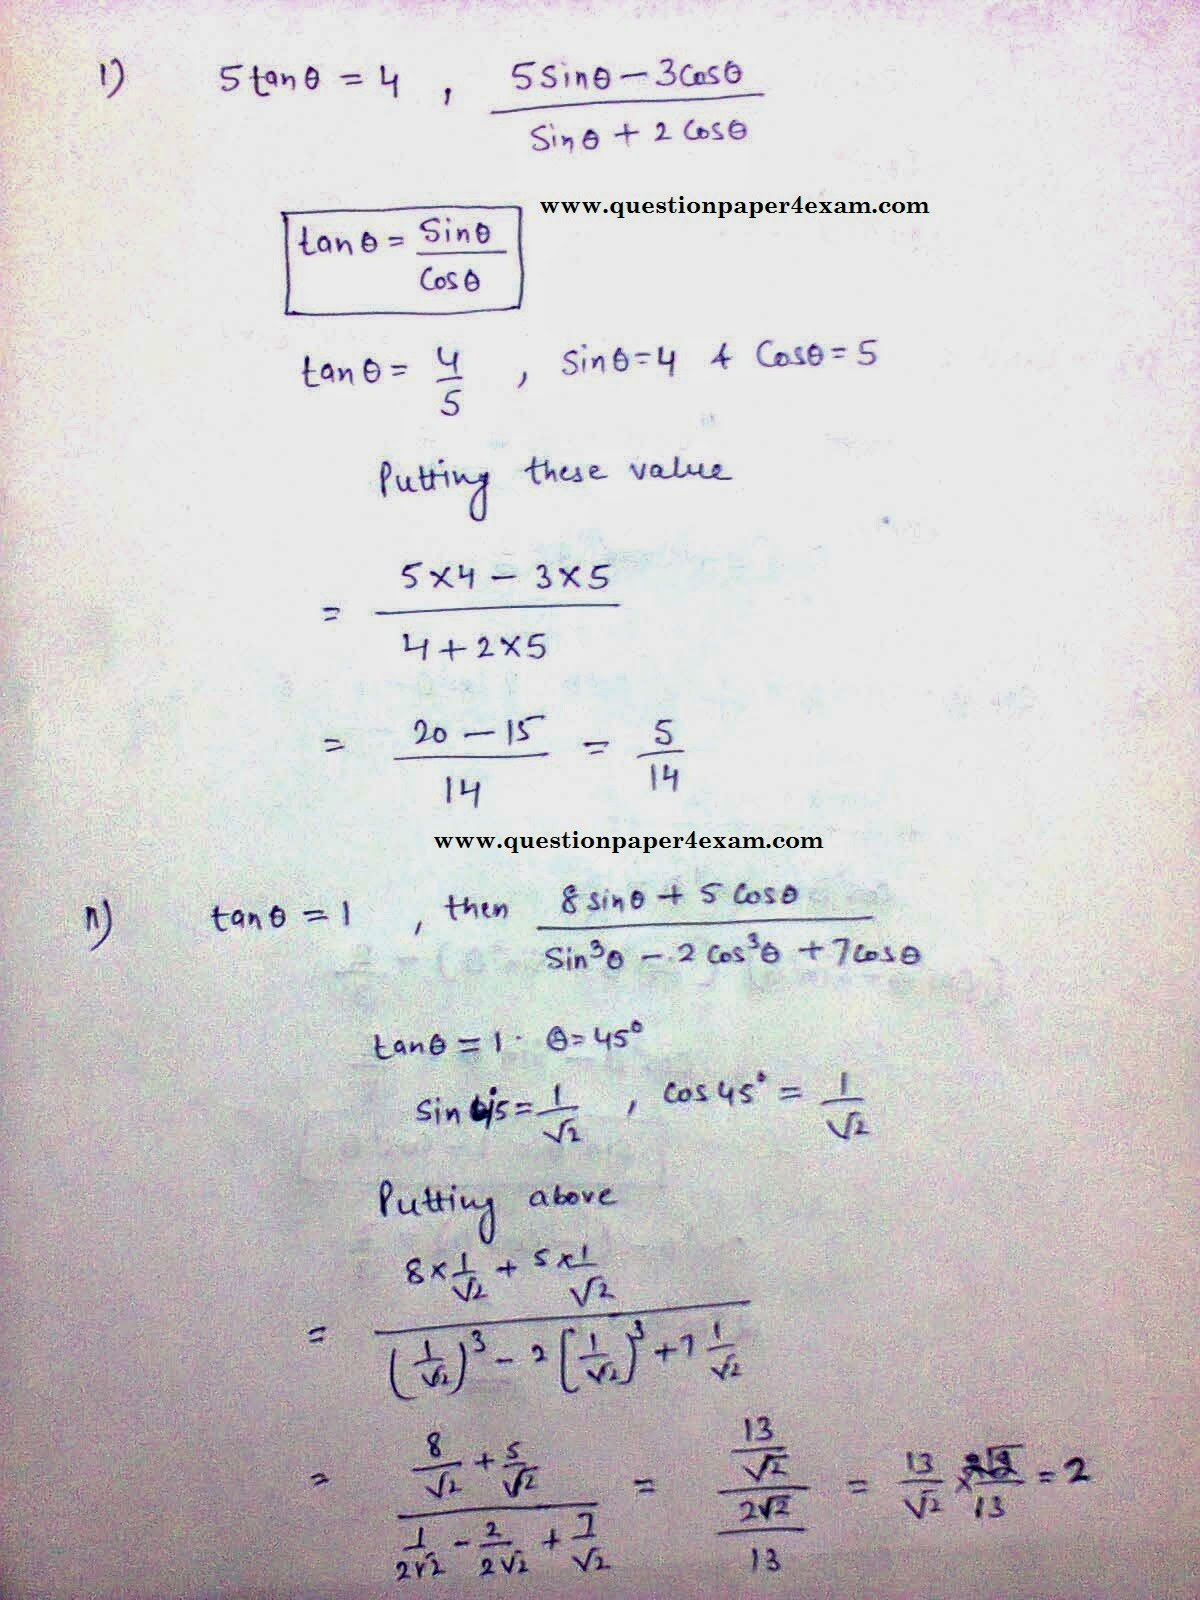 ssc exam trigonometry basic concepts question paper some question solution that asked in previous ssc paper